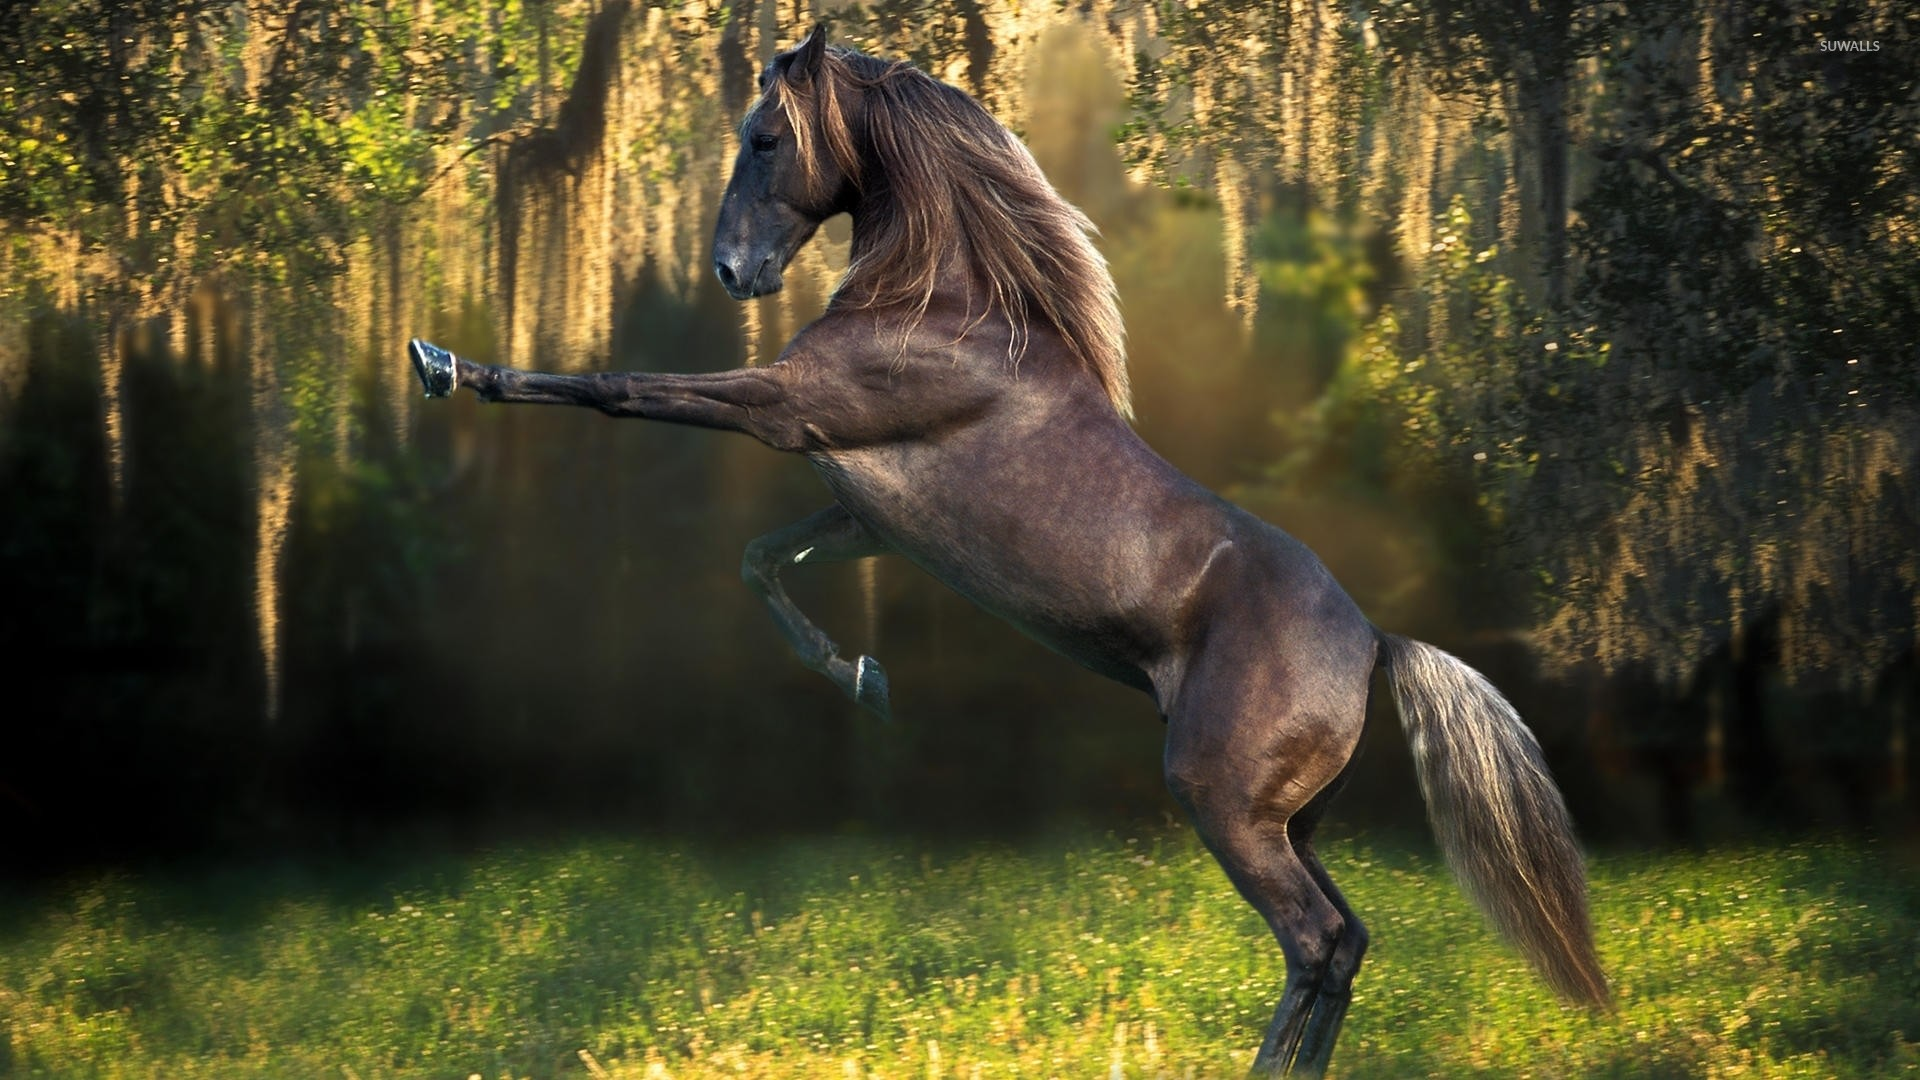 Prancing brown horse in the forest wallpaper jpg